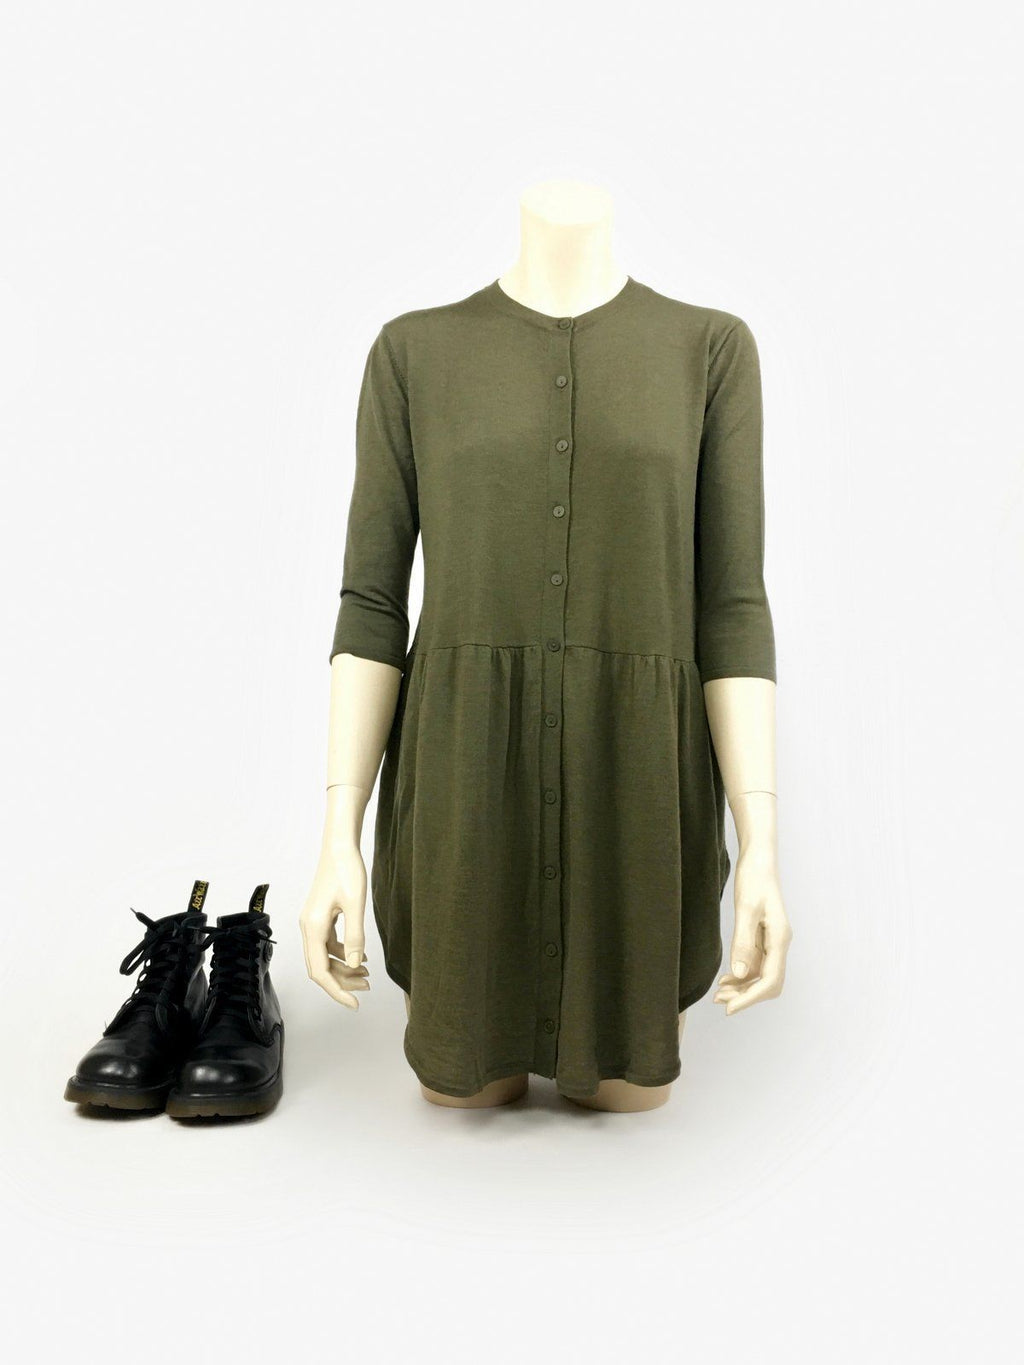 COS Thin Merino Wool Khaki Green Loose Tunic Dress Size XS - secondfirst